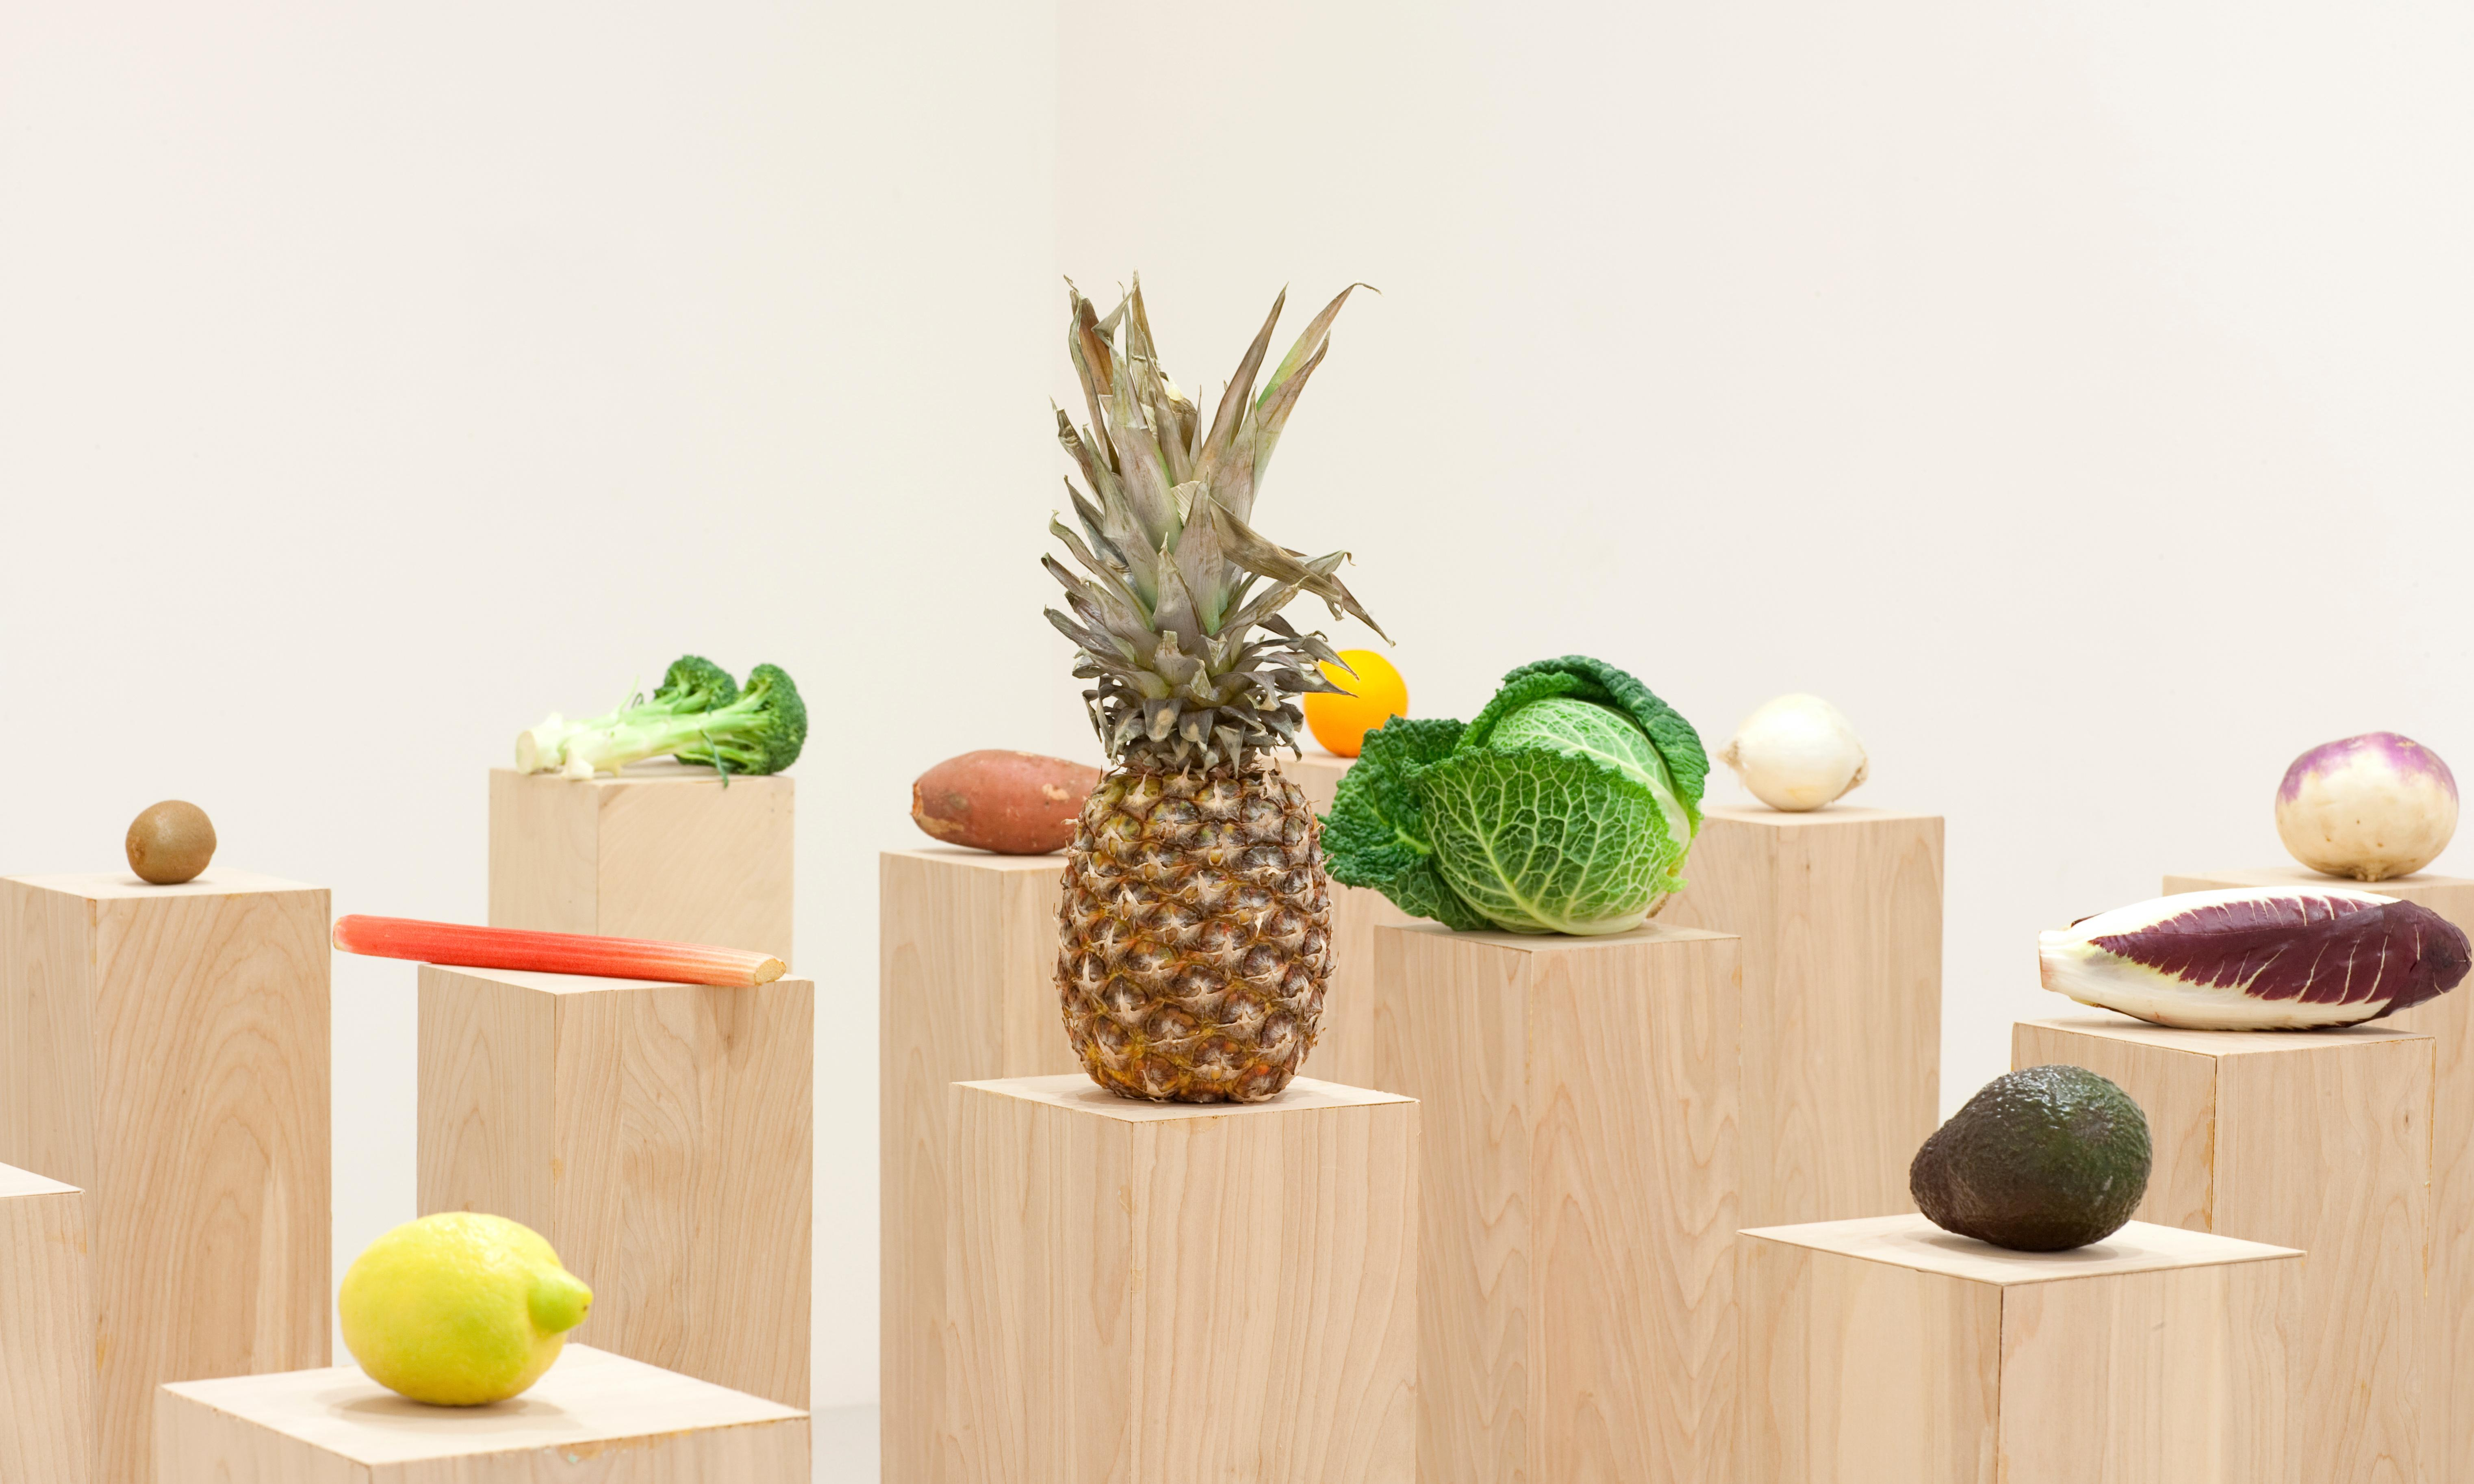 How do you follow heroin lasagne? The artist who wants you to dice his veg